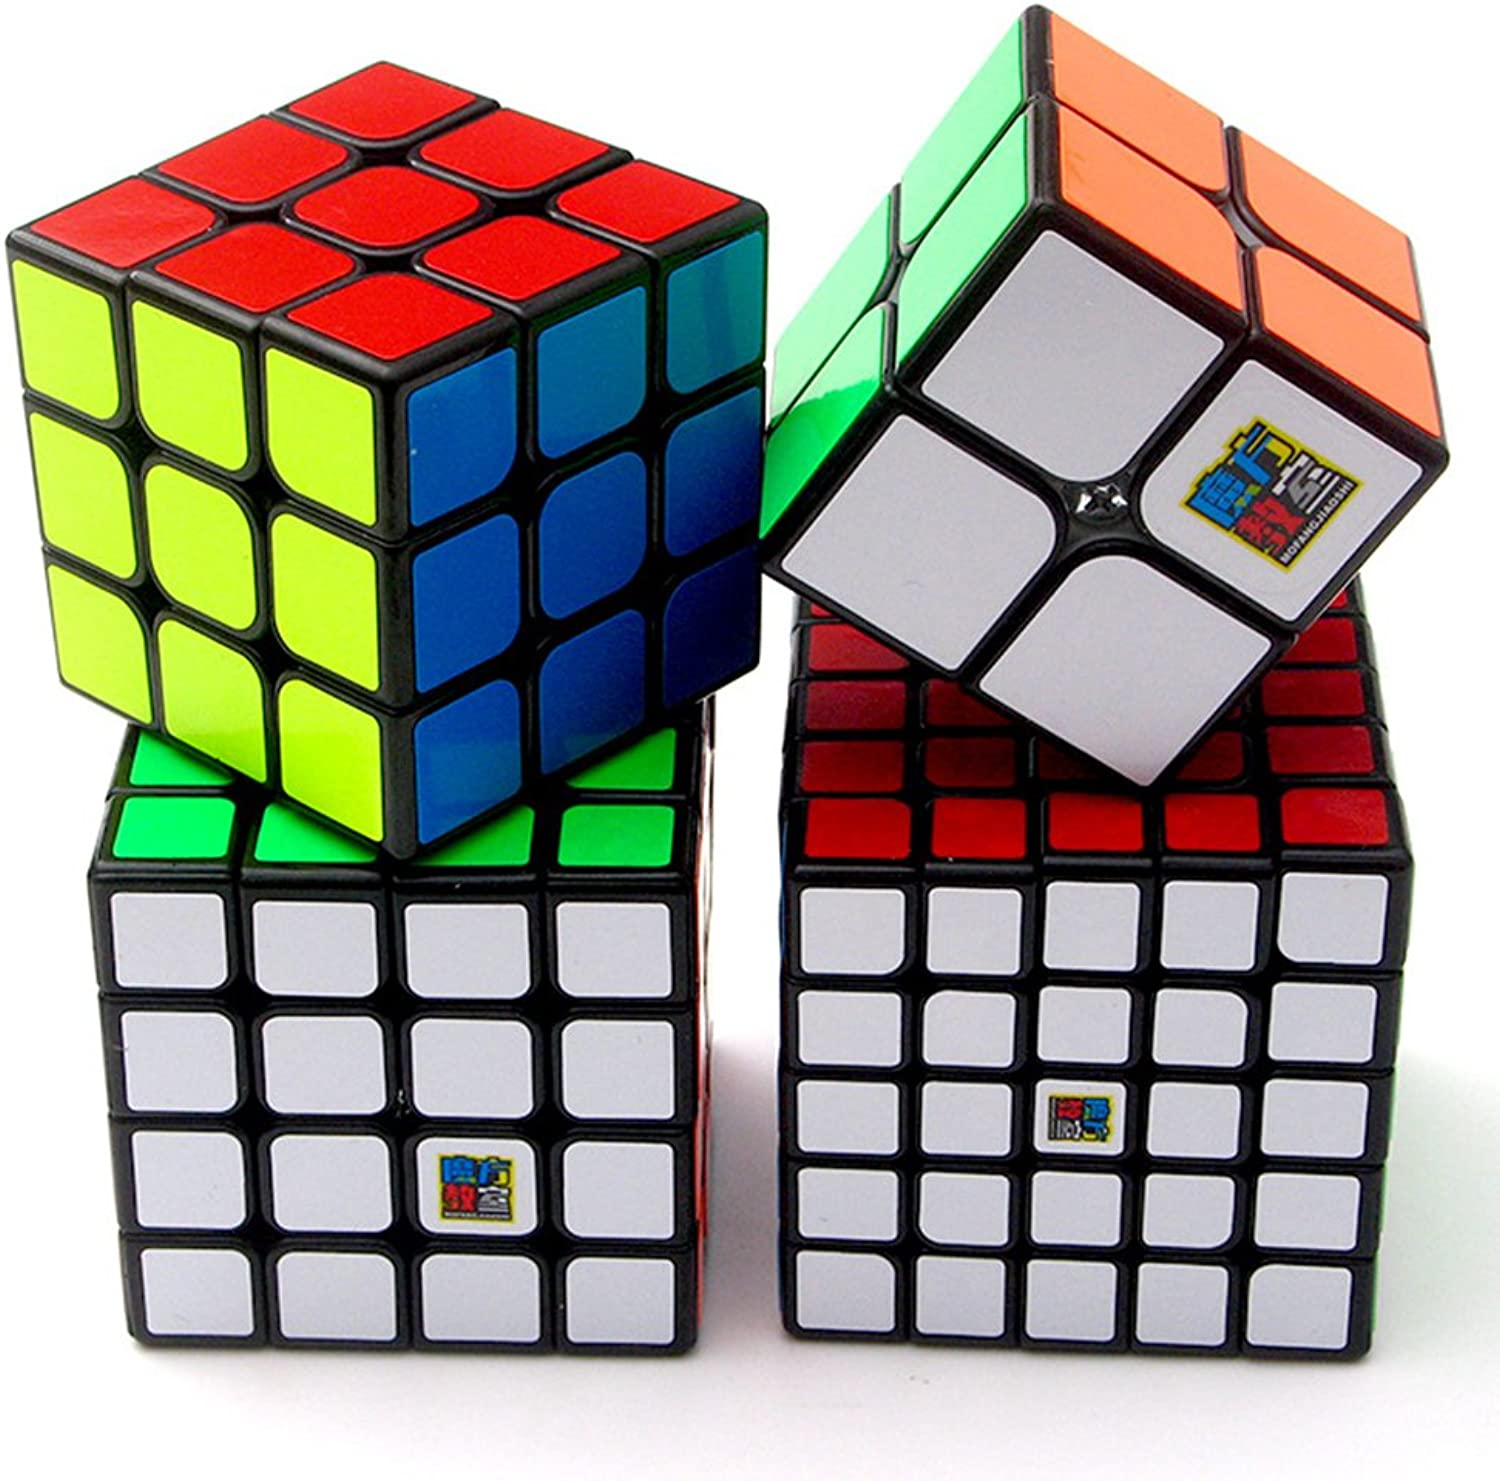 Speed Cube Puzzle Pack   2x2 3x3 4x4 5x5 Sticker Cube Set Black  4 Pieces Magic Cubes Collection   Puzzle Toys Brain Teaser Gifts